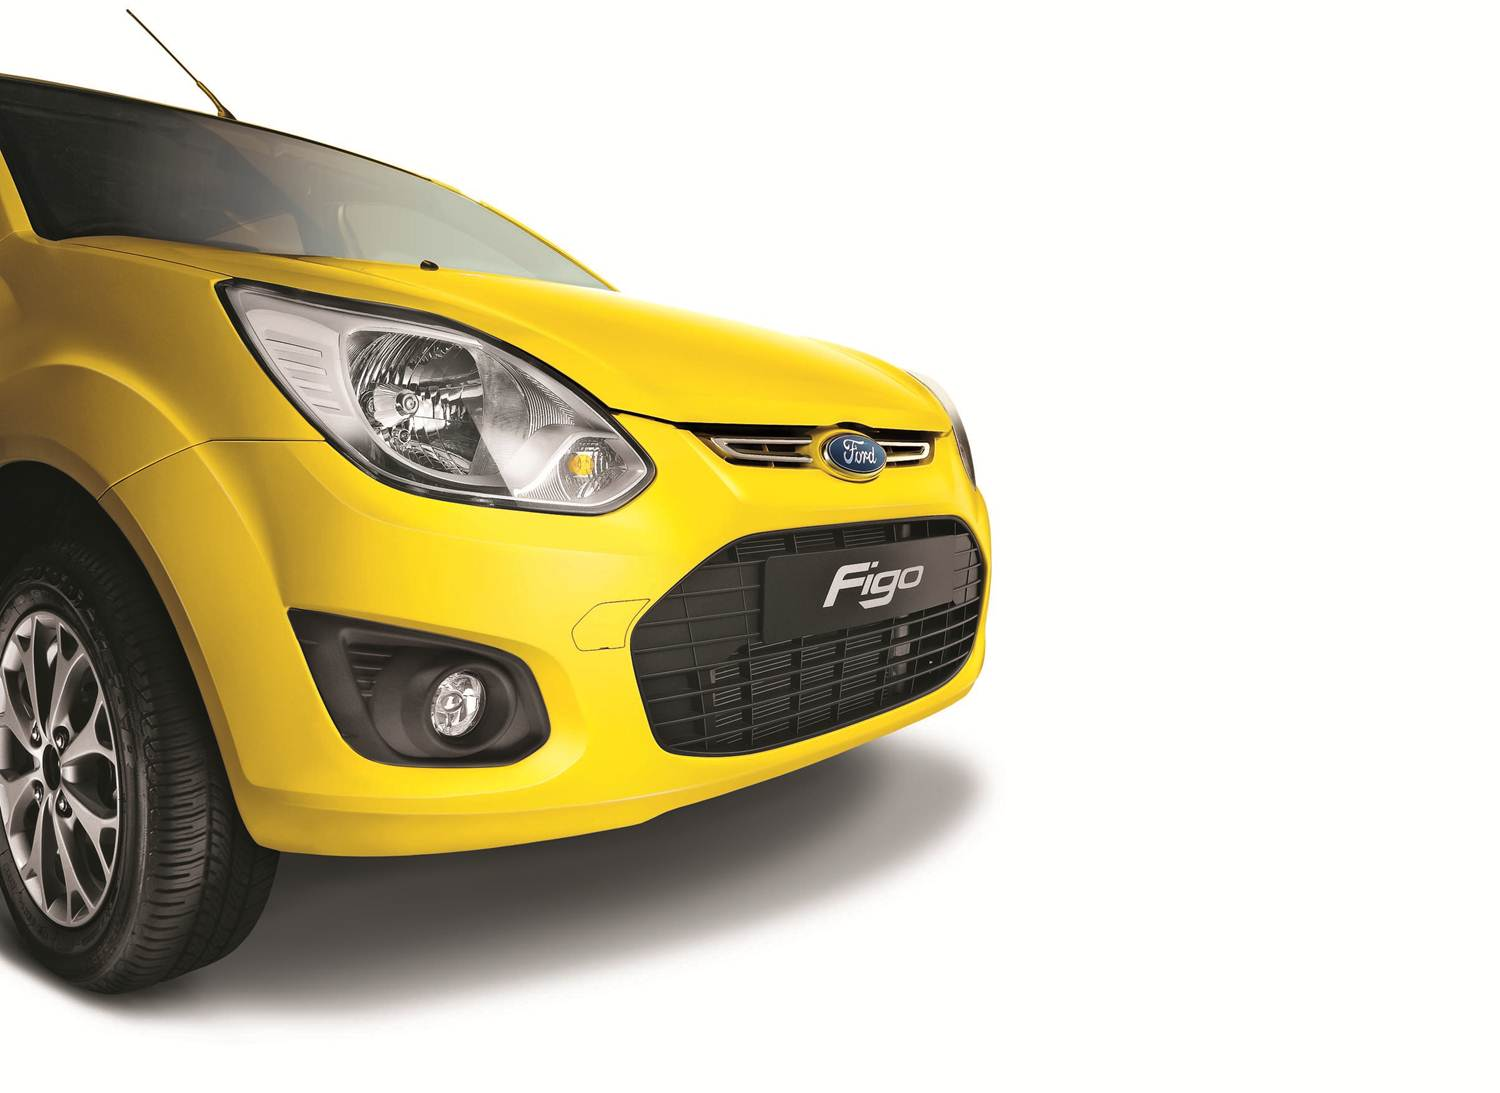 New-Ford-Figo-Bumper